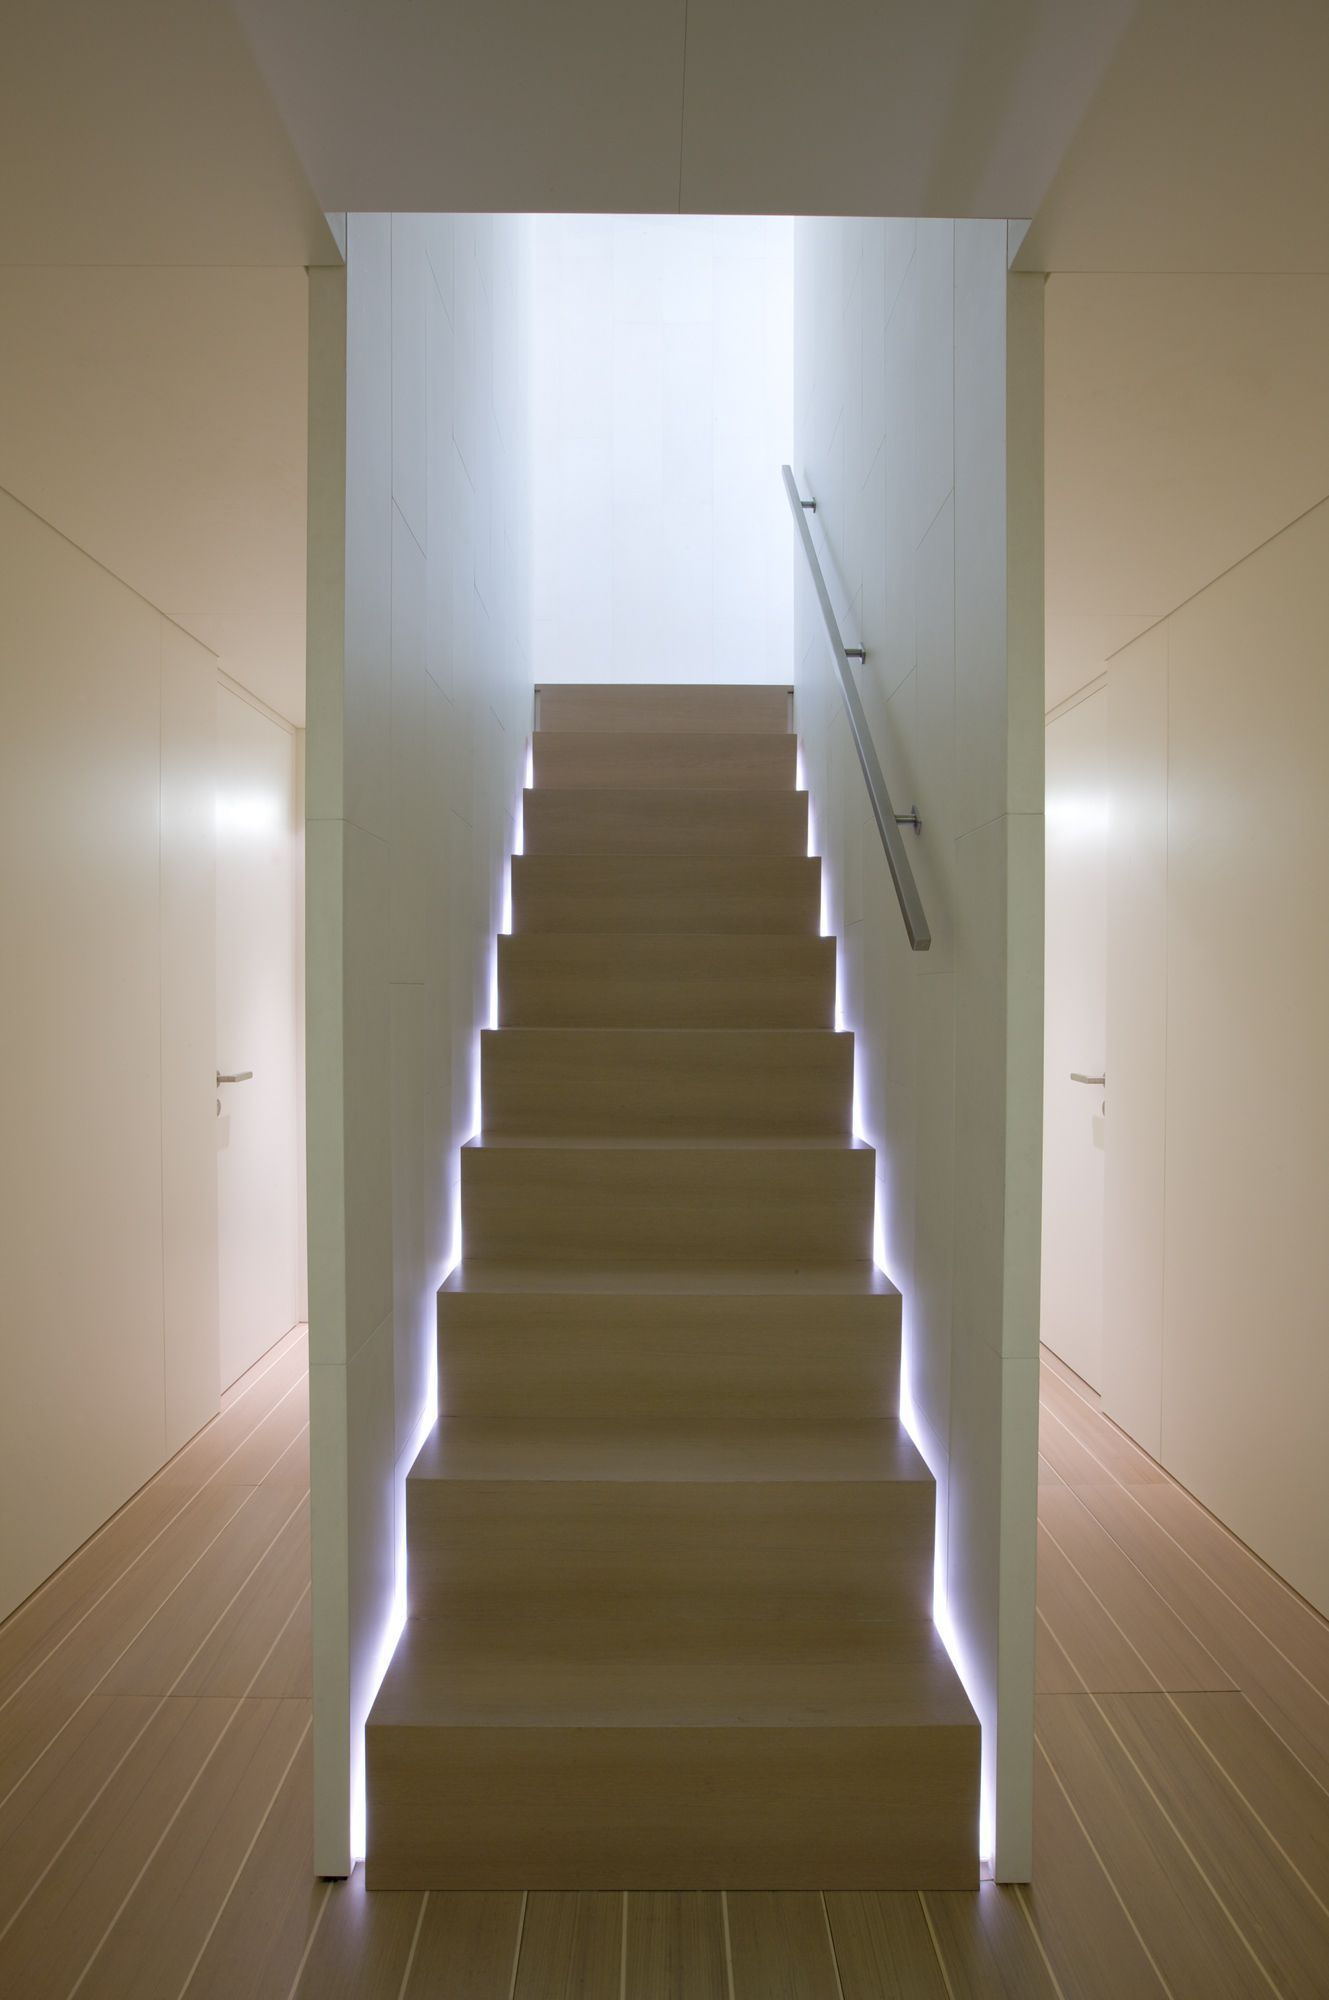 Eclairage Led Indirect Éclairage Indirect Bandeau Led Escalier Plaf In 2019